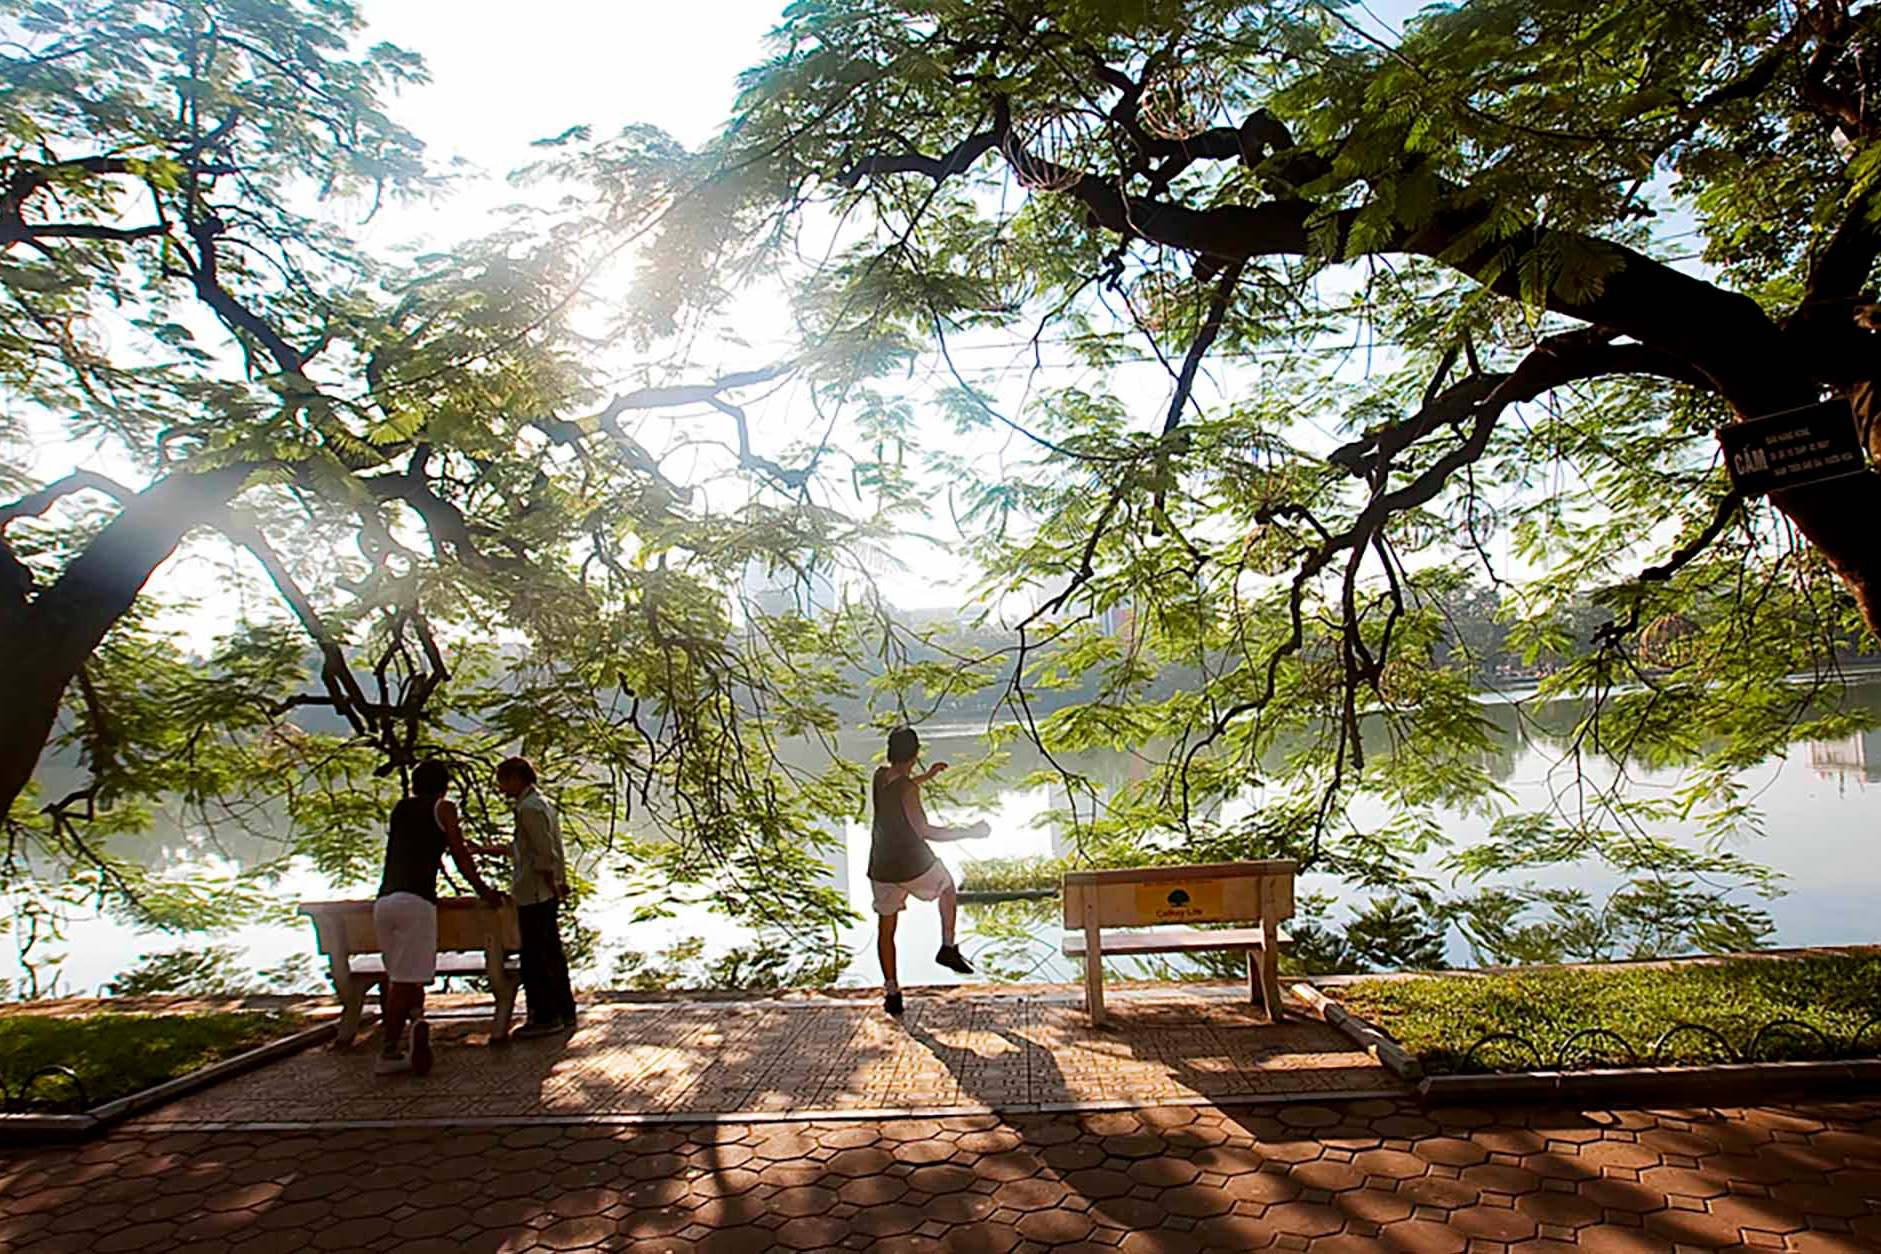 Hanoi Perspectives: Morning Exercise by the Lake